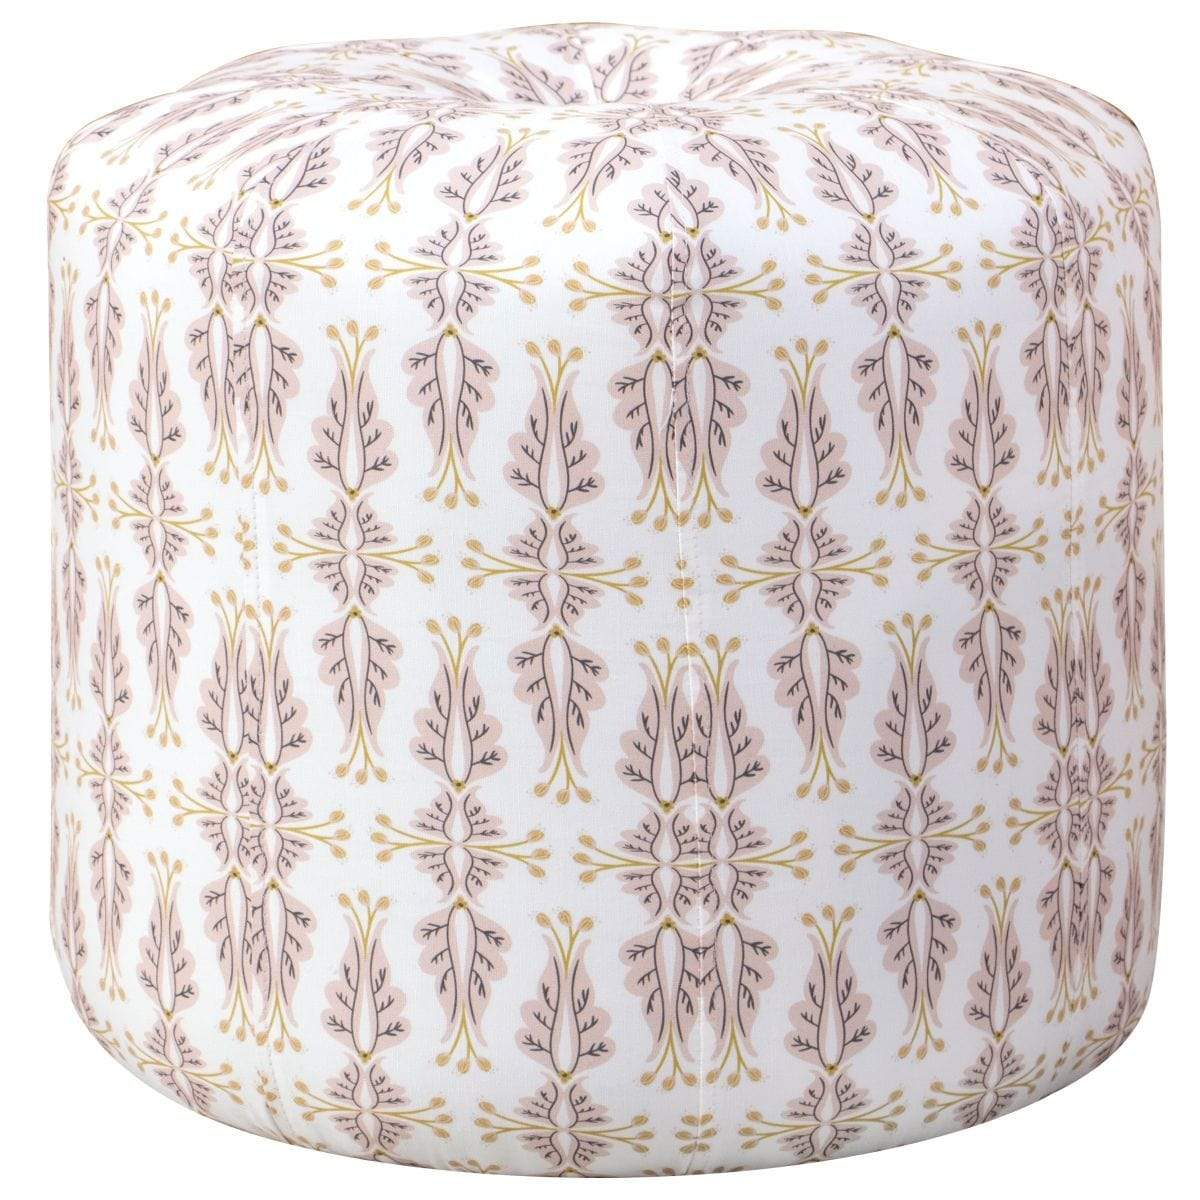 Cloth & Company Cloth & Company Isabelle Ottoman in Chan Damask Blush Oga COT1702CHDMBLSOGA